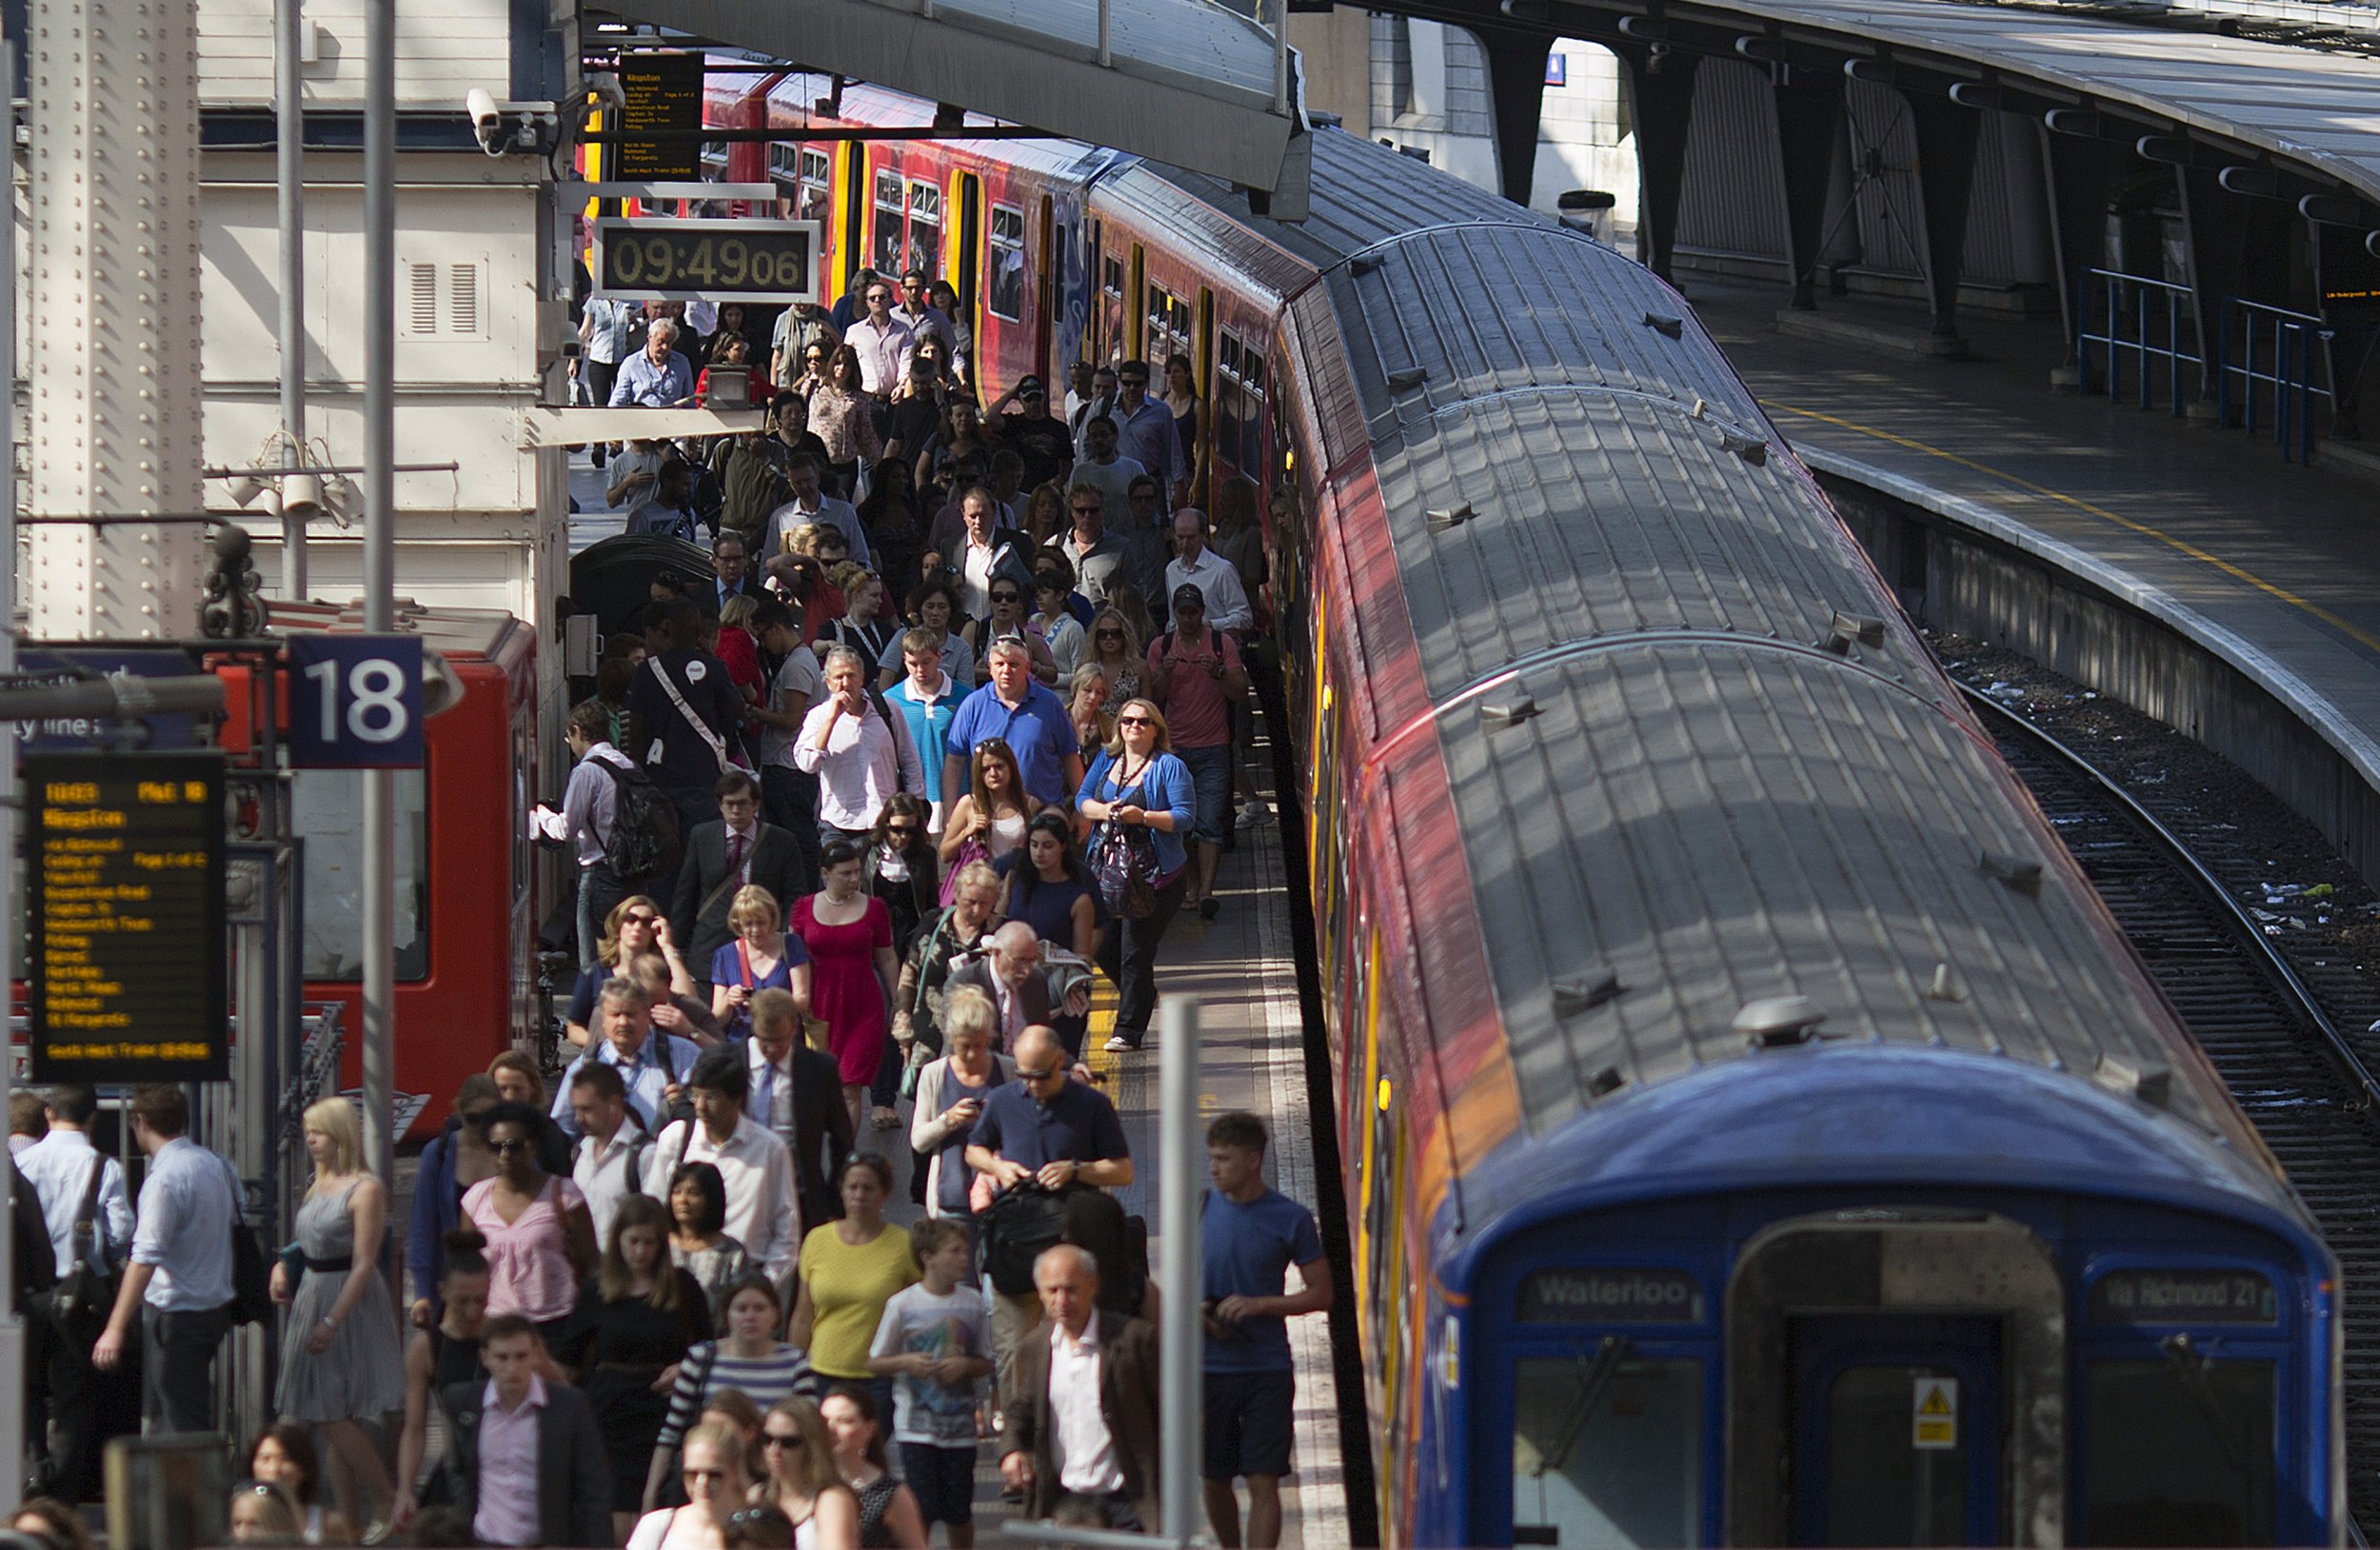 South West Trains are about to open a fresh level of hell at Waterloo Station